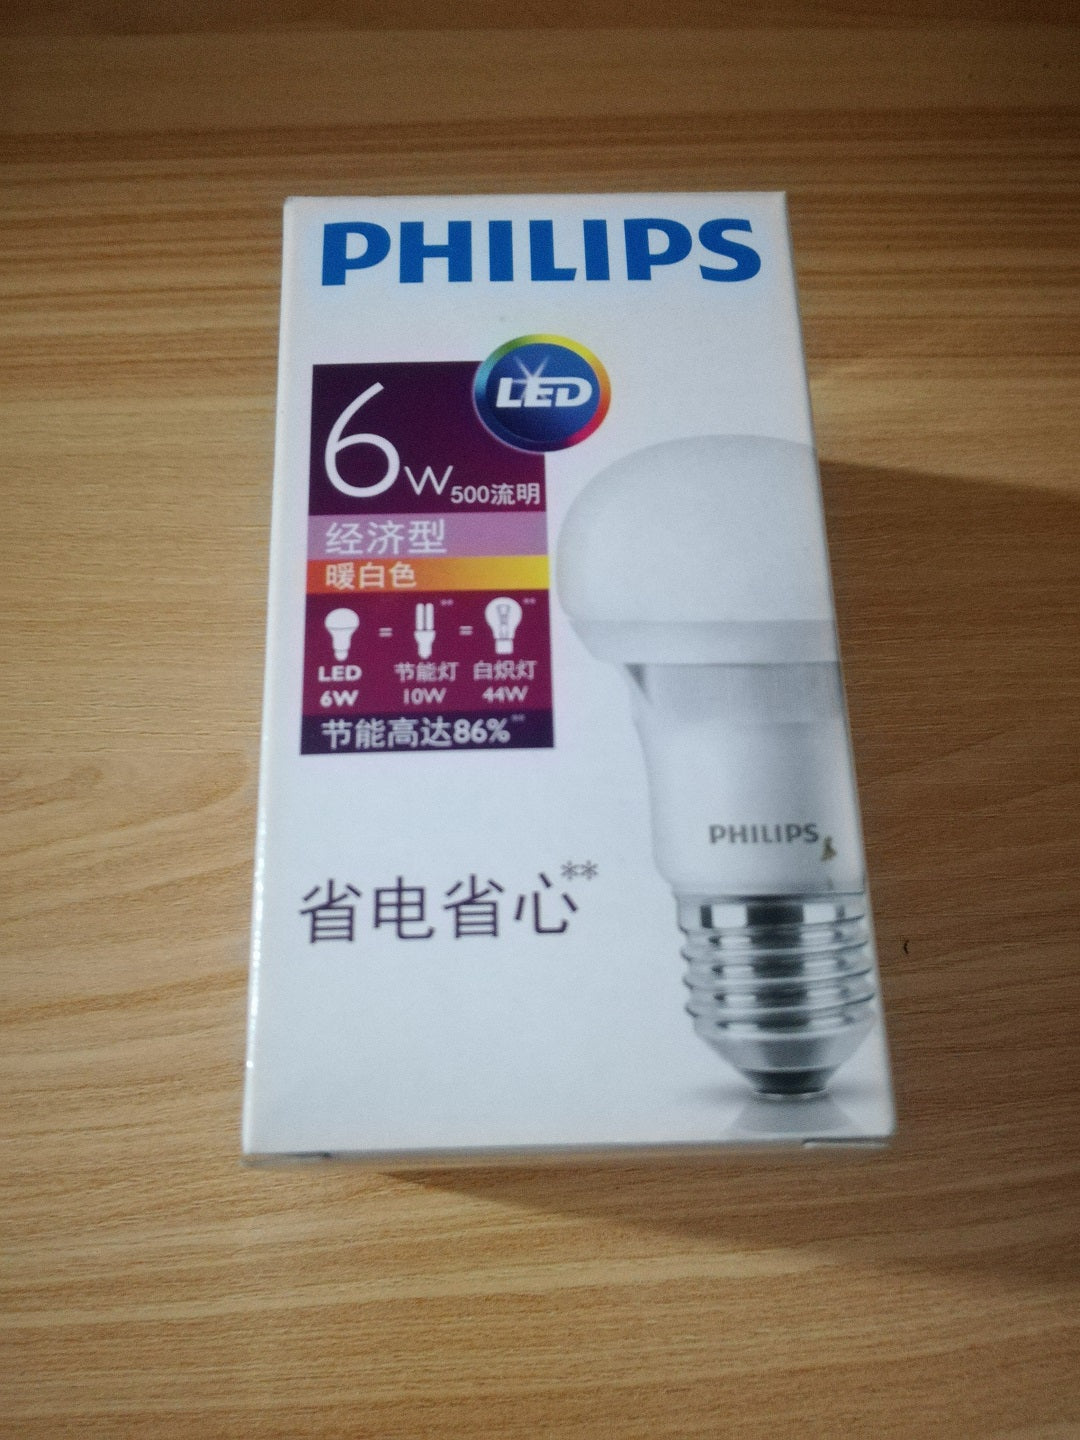 Philips 6 W LED bulb Review